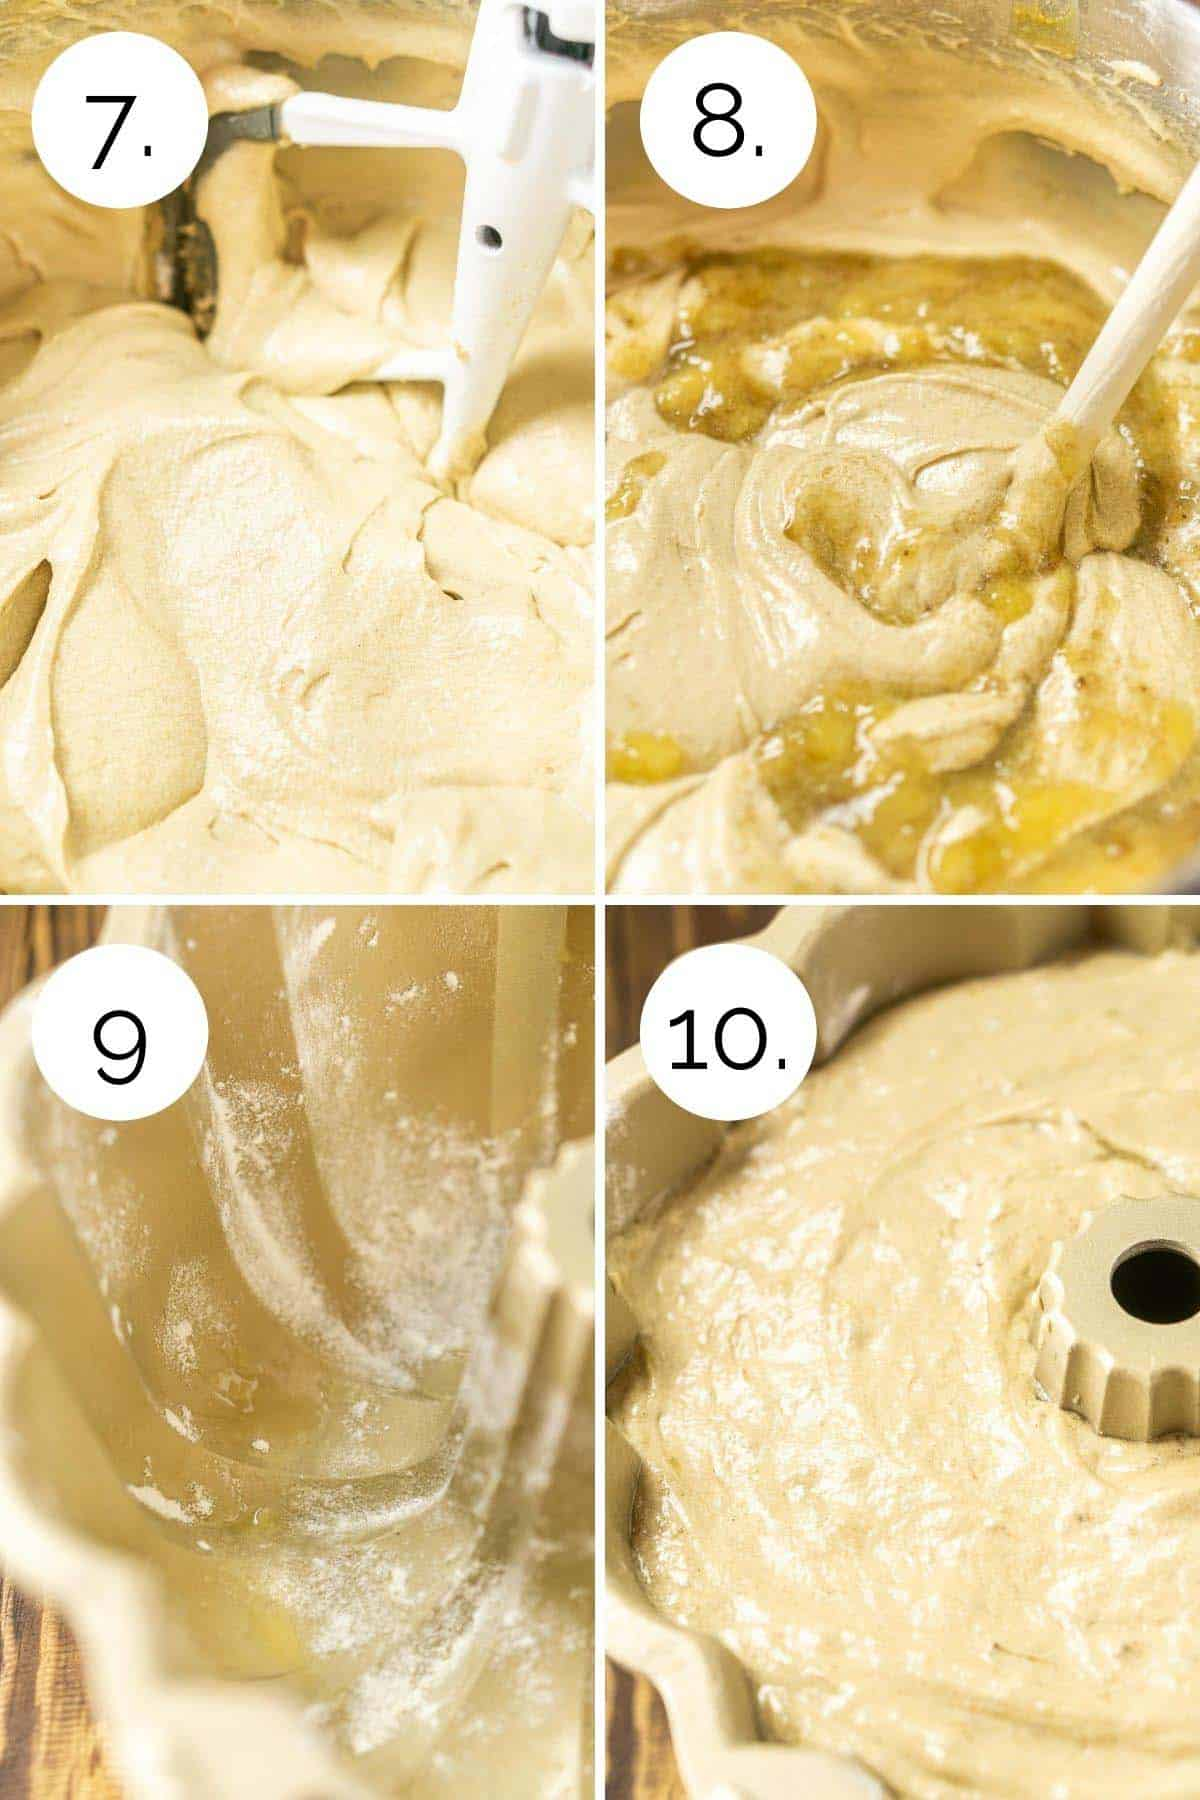 Showing the process of beating the batter and preparing it for baking.